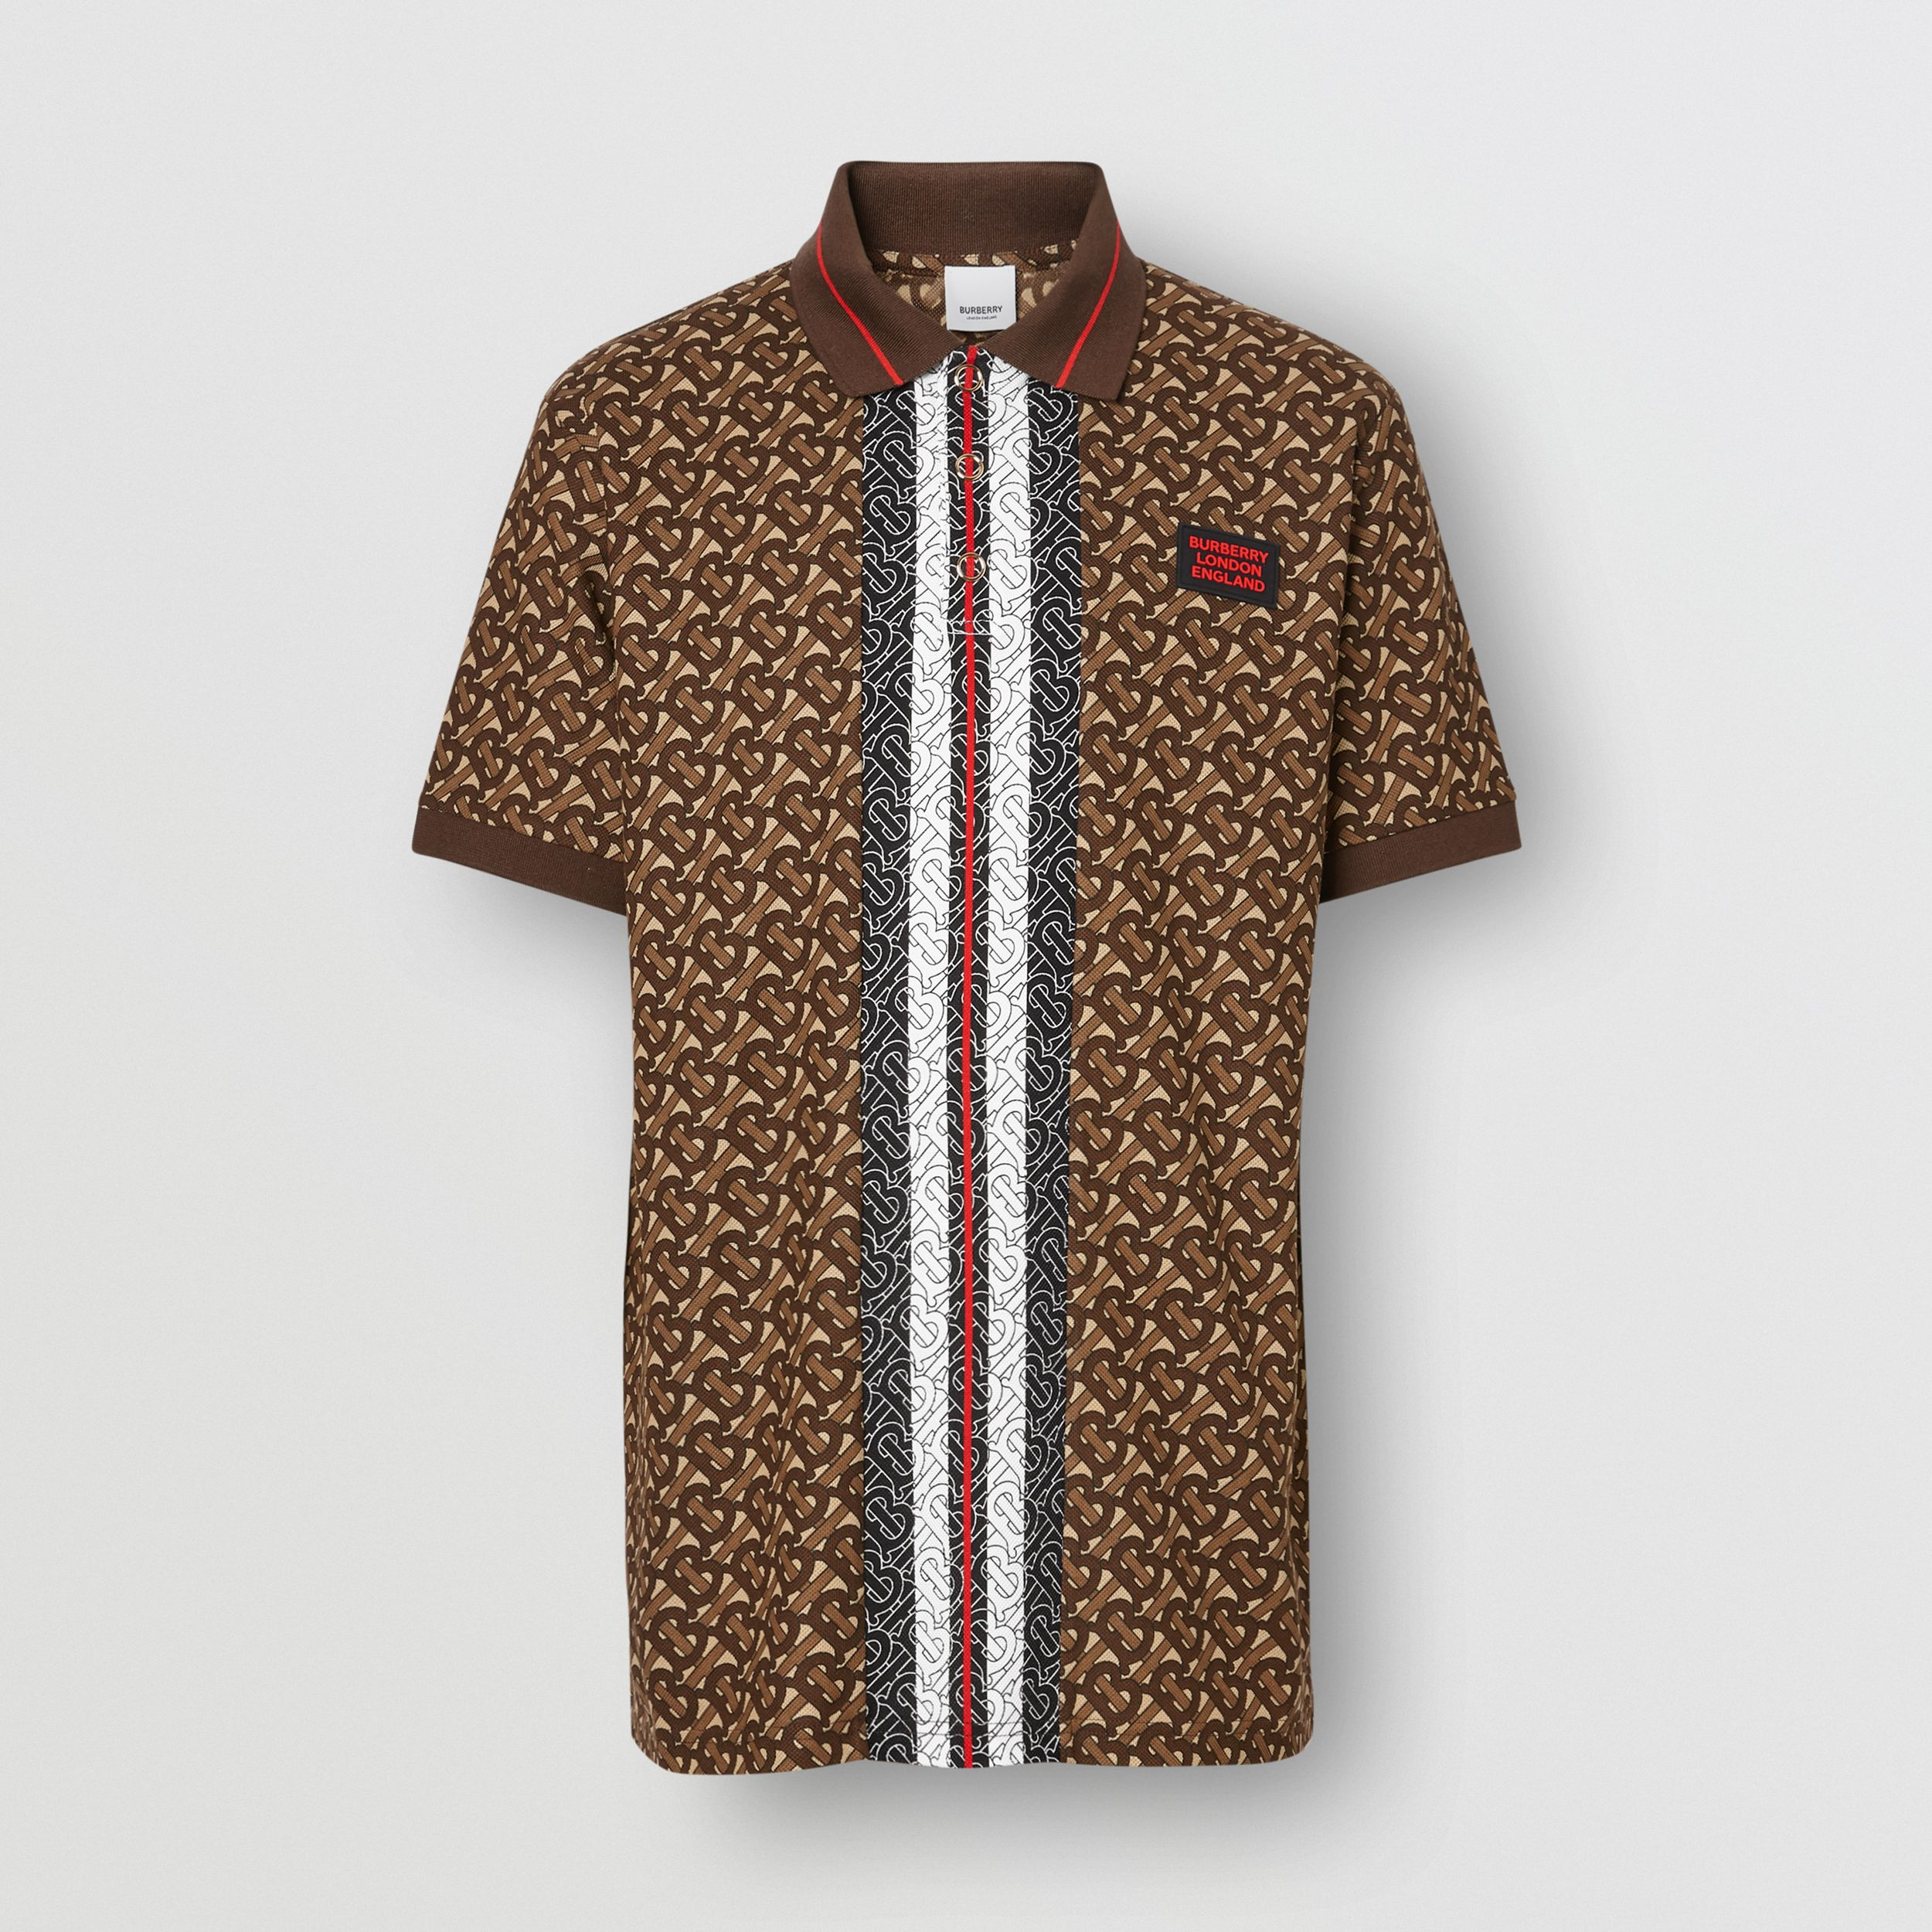 Monogram Stripe Print Cotton Piqué Polo Shirt in Bridle Brown - Men | Burberry - 4